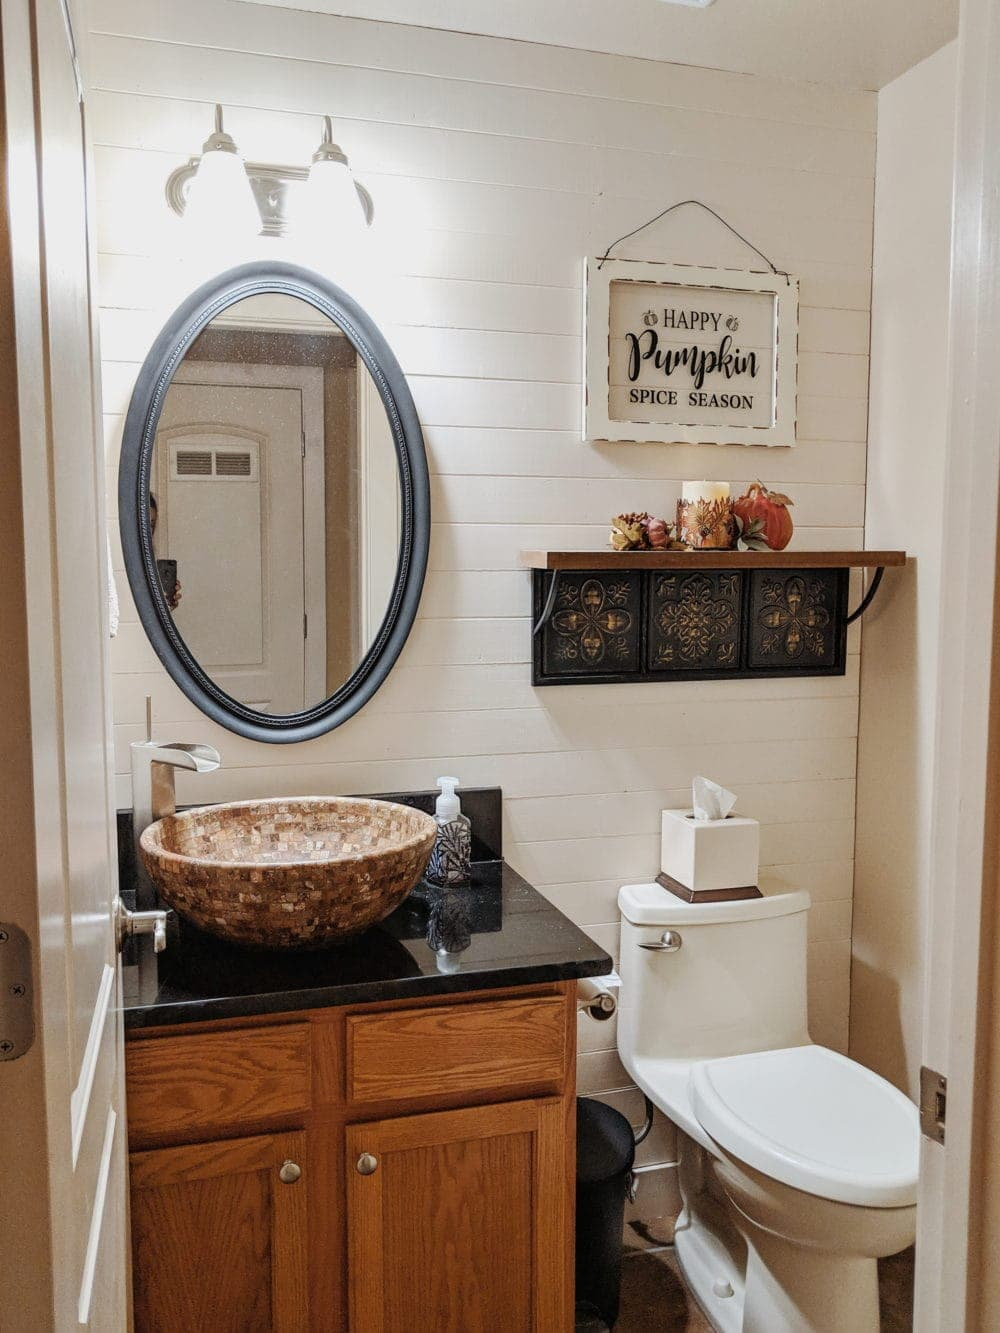 8 Popular Bathroom Remodel Ideas And Trends For 2020